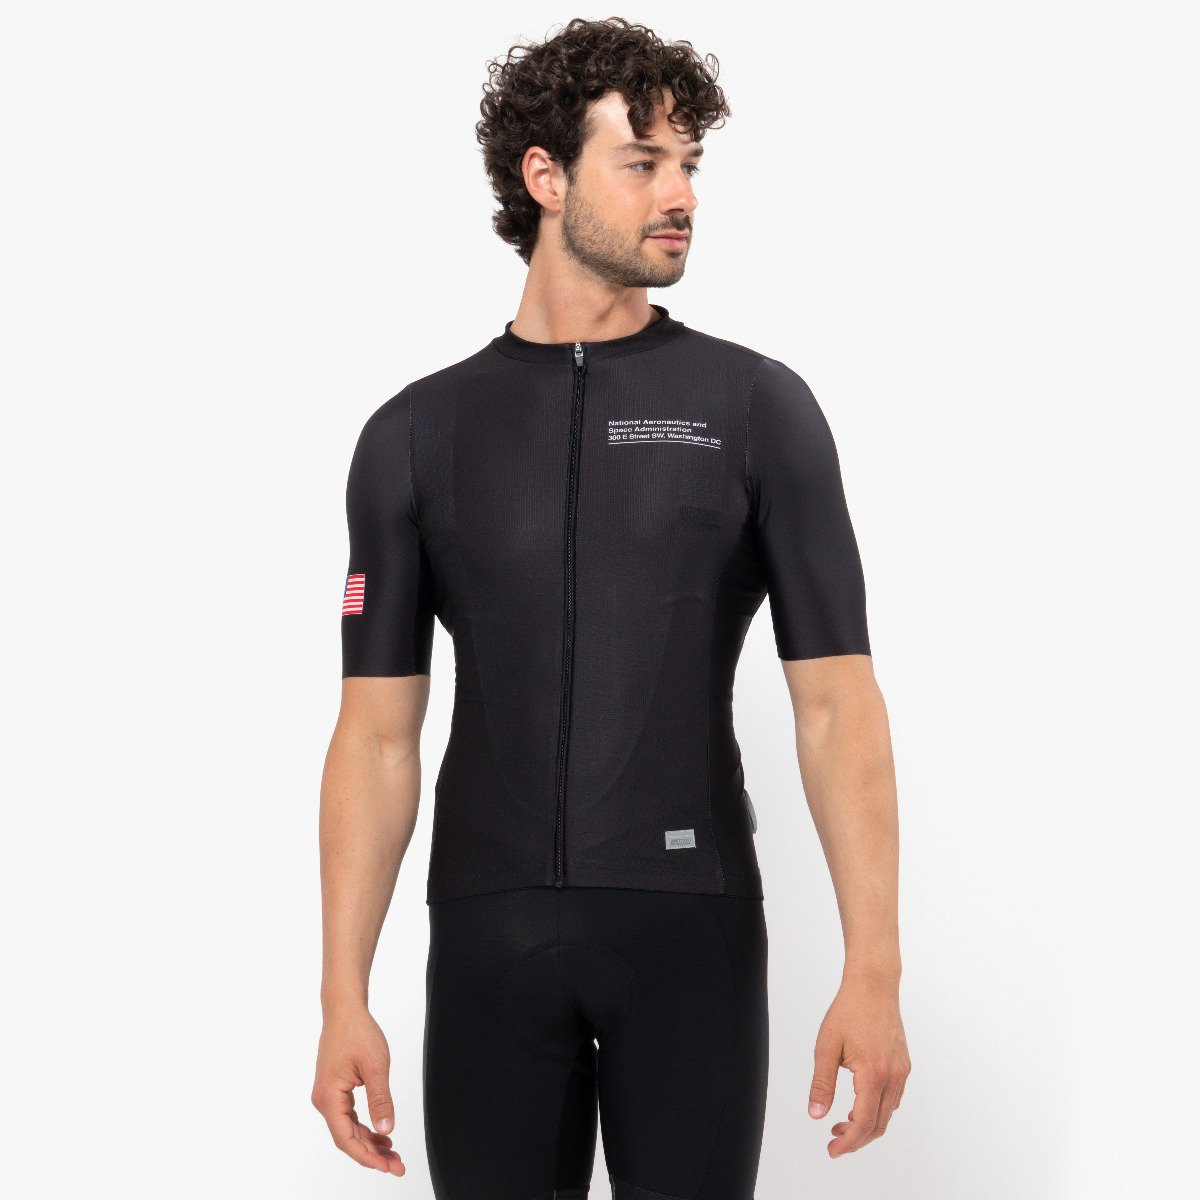 SPACE AGENCY X-OVER CYCLING JERSEY 04